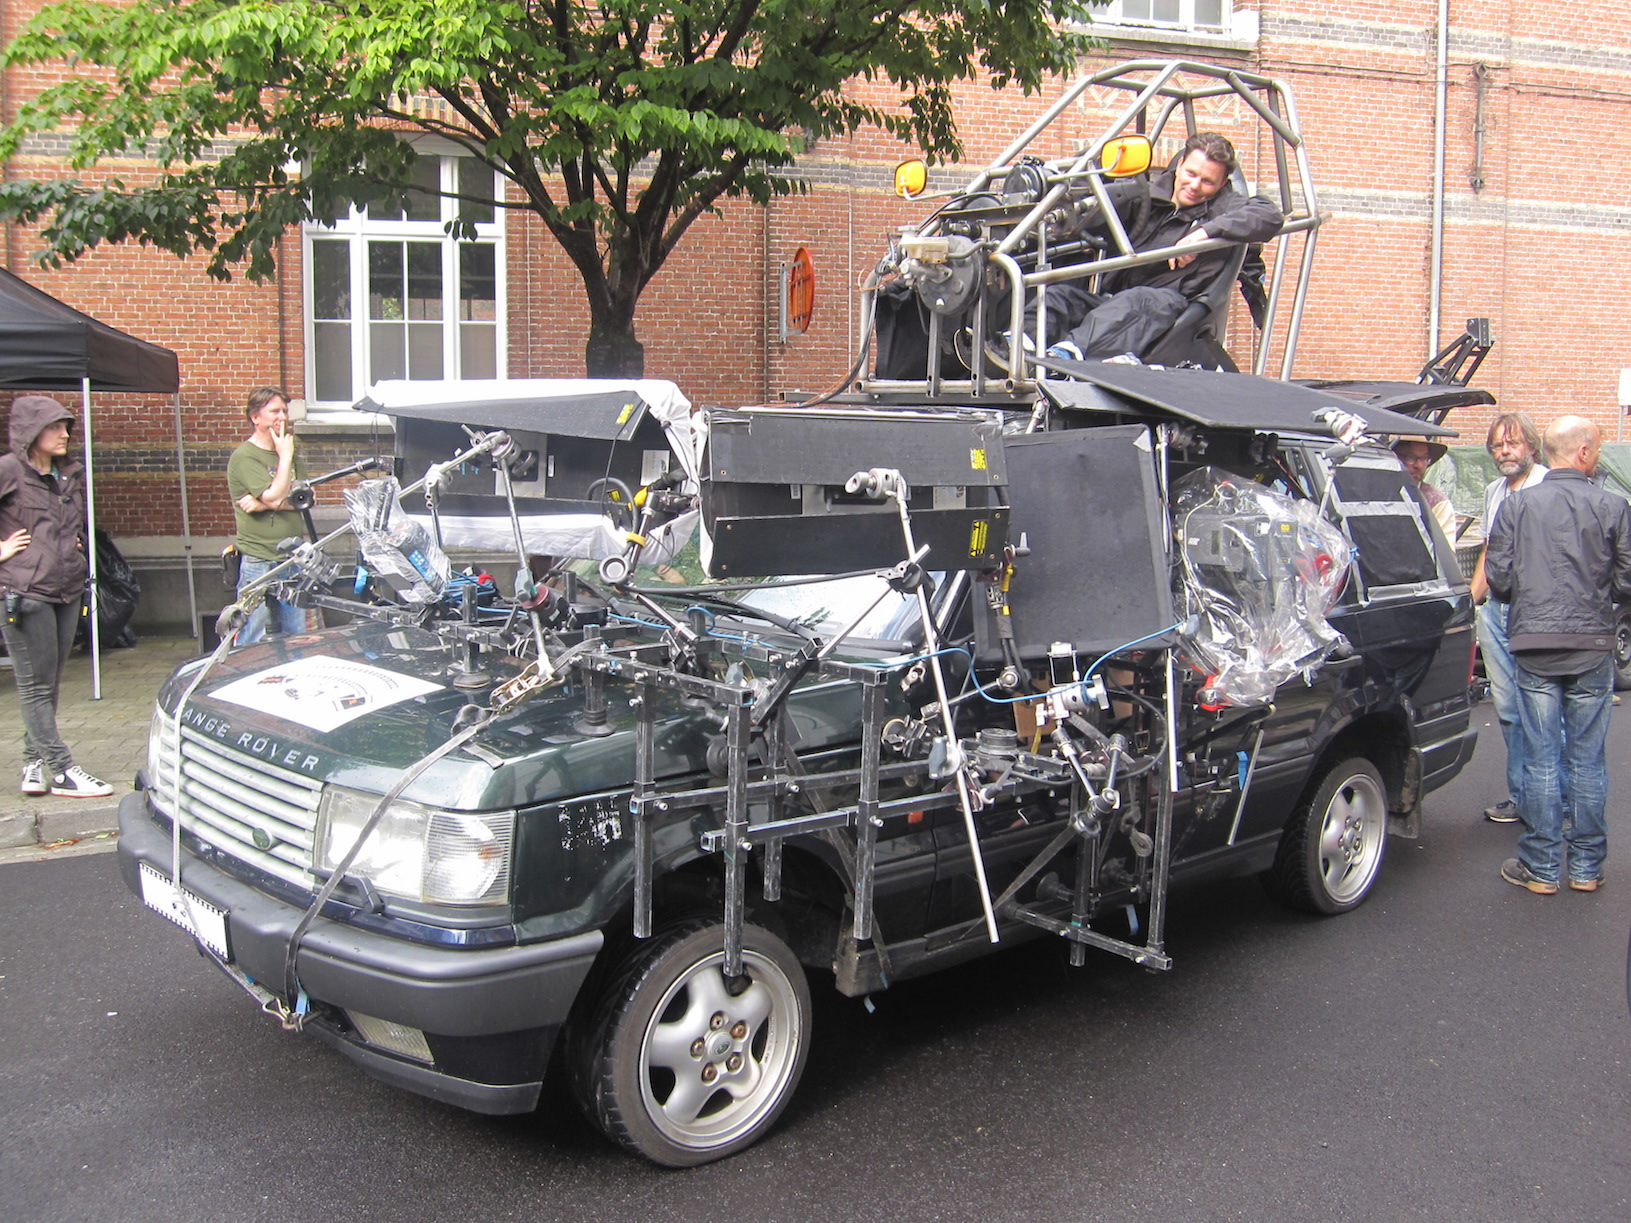 A rig custom built to facilitate filming in the narrow streets of Antwerp.